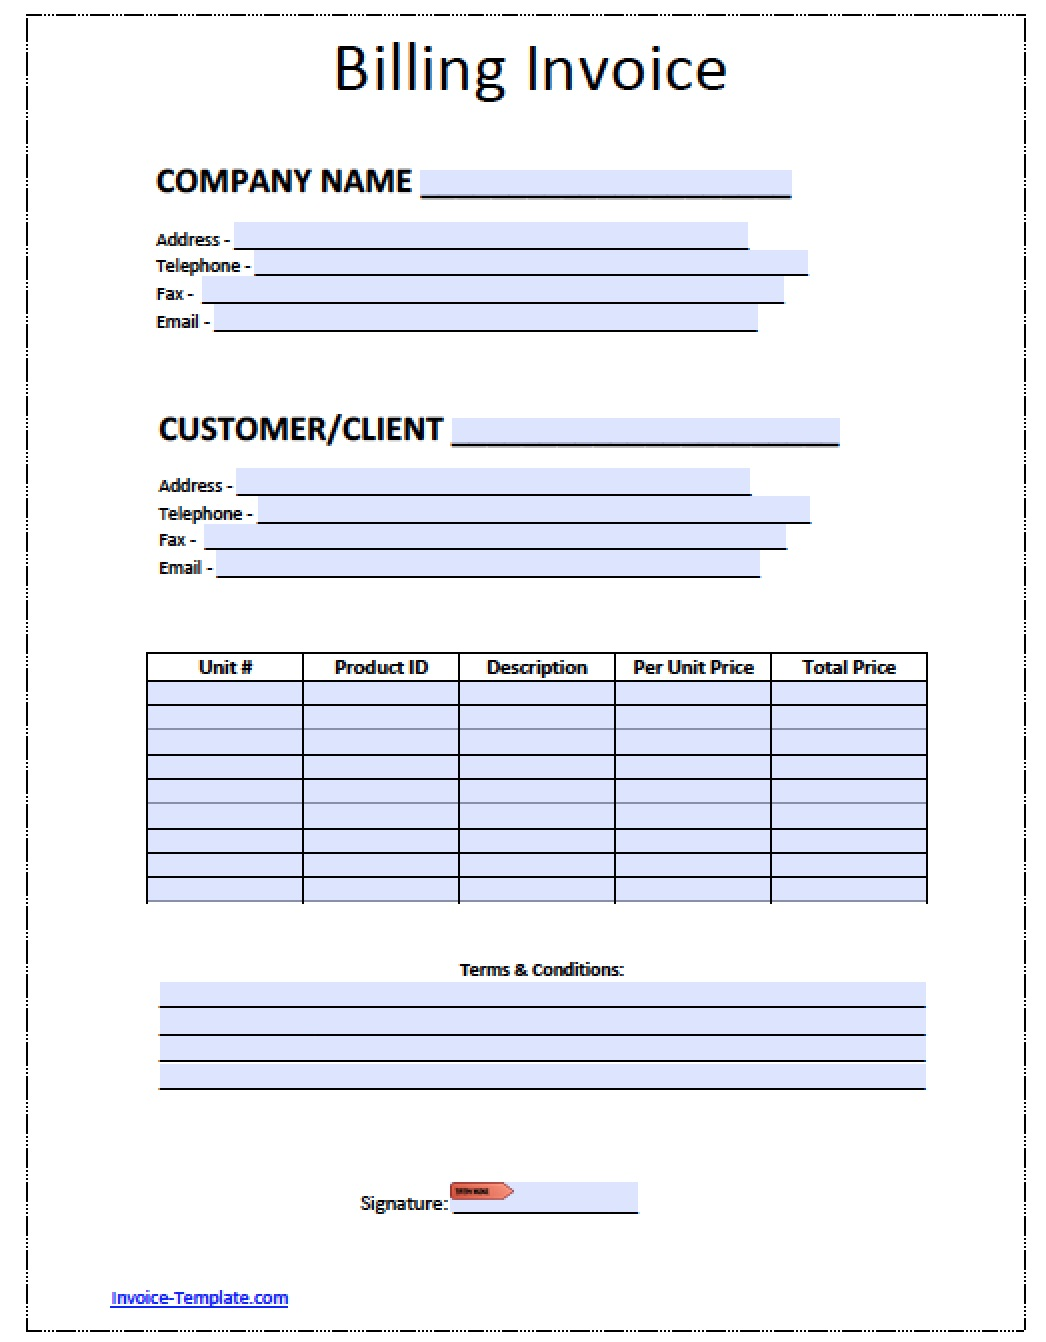 Free Fillable Pdf Invoice Templates Trattorialeondoro - Fillable pdf invoice